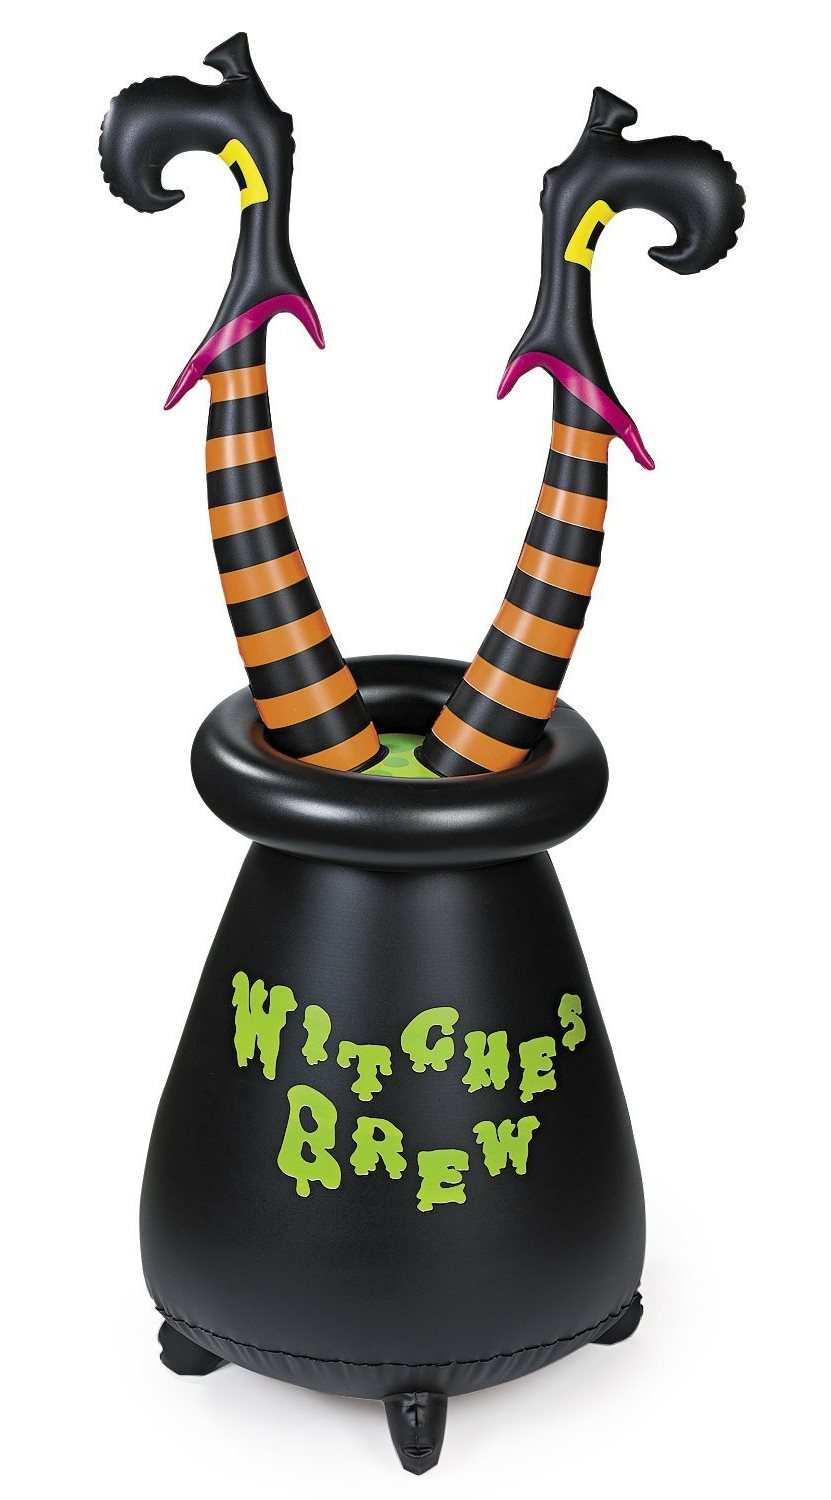 Outdoor inflatable halloween decorations - Outdoor Inflatable Halloween Decorations Seems Like She Should Know Better Than To Dive Into The Download